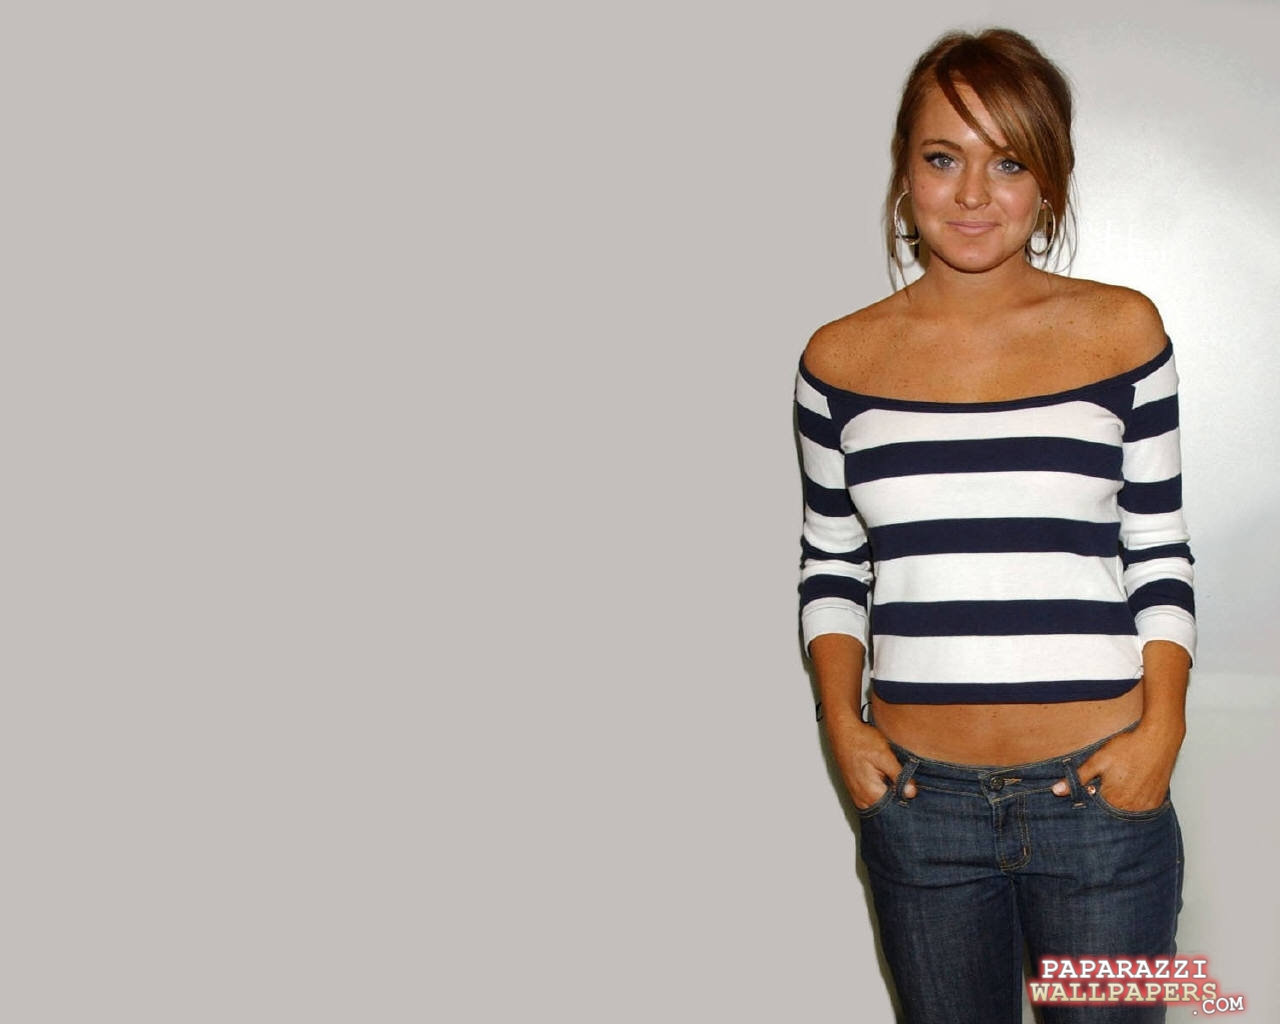 lindsay lohan wallpapers 088